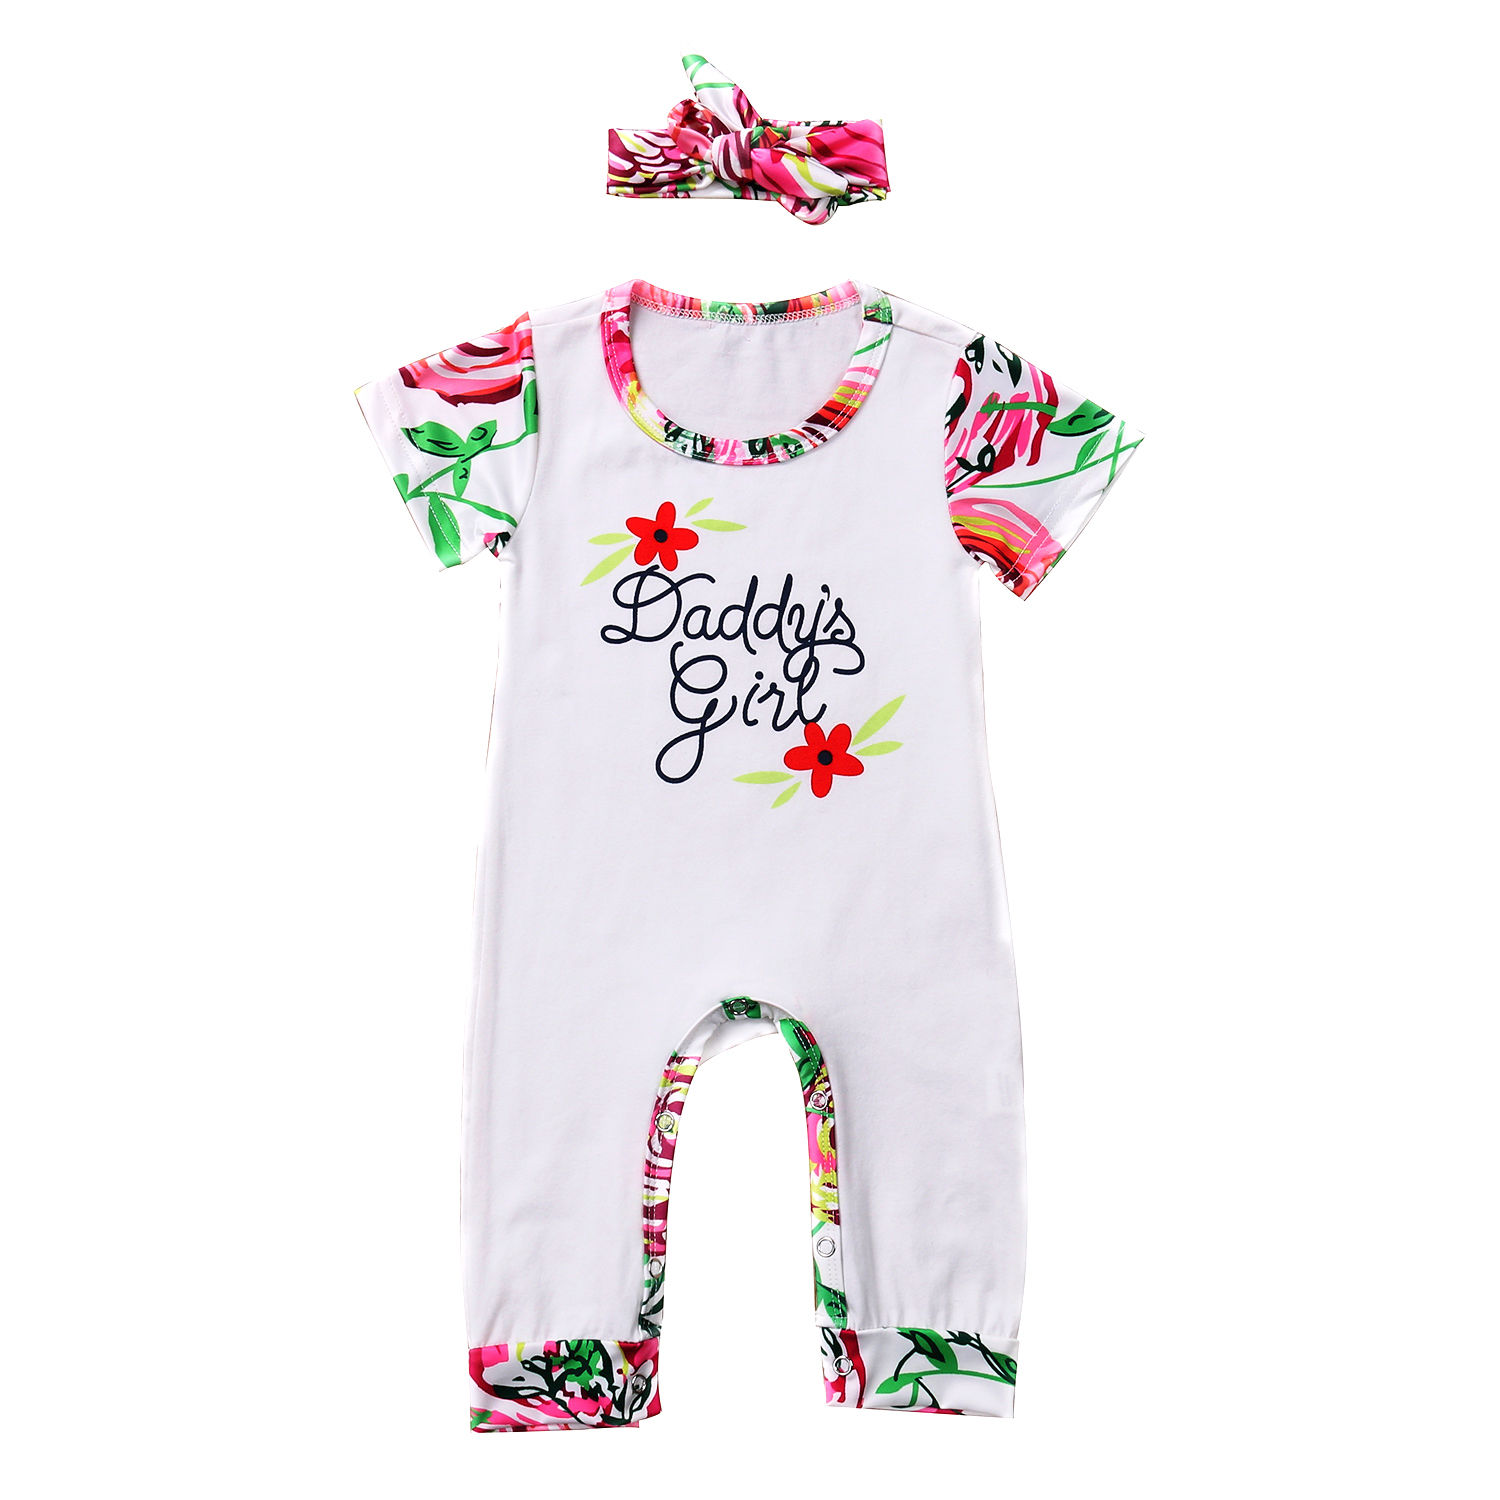 2017 New Cute Baby Rompers Girl Floral Rompers Cotton Infant Baby Girls Jumpers Short Sleeve Kids Girl Outfits Costume Clothing